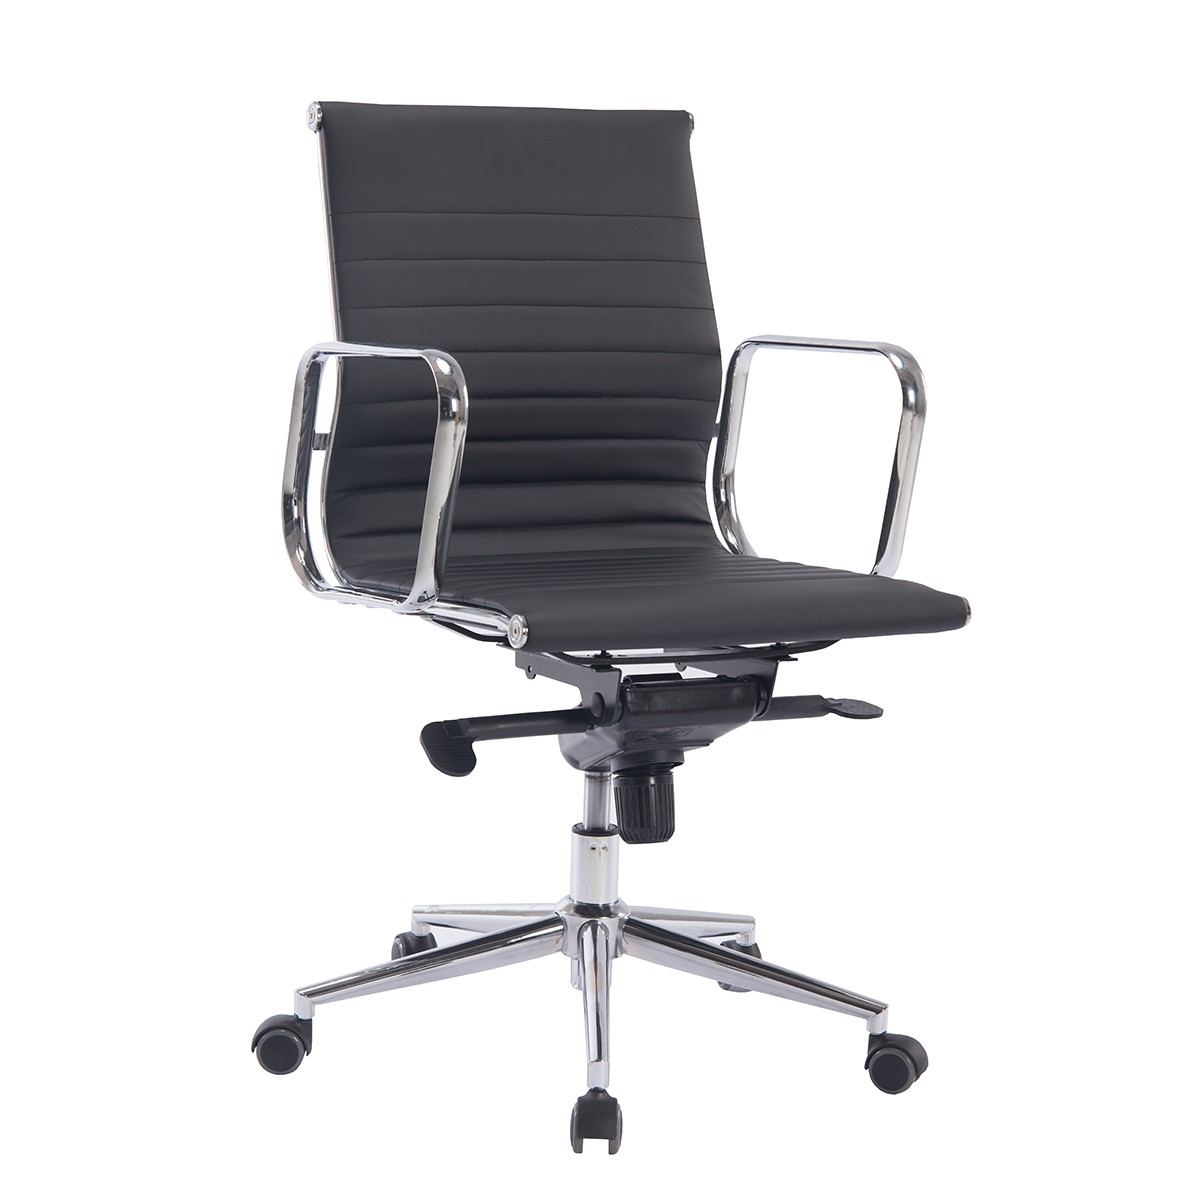 Office Armchair ARKANSAS, Rotatable, Similpiel Black